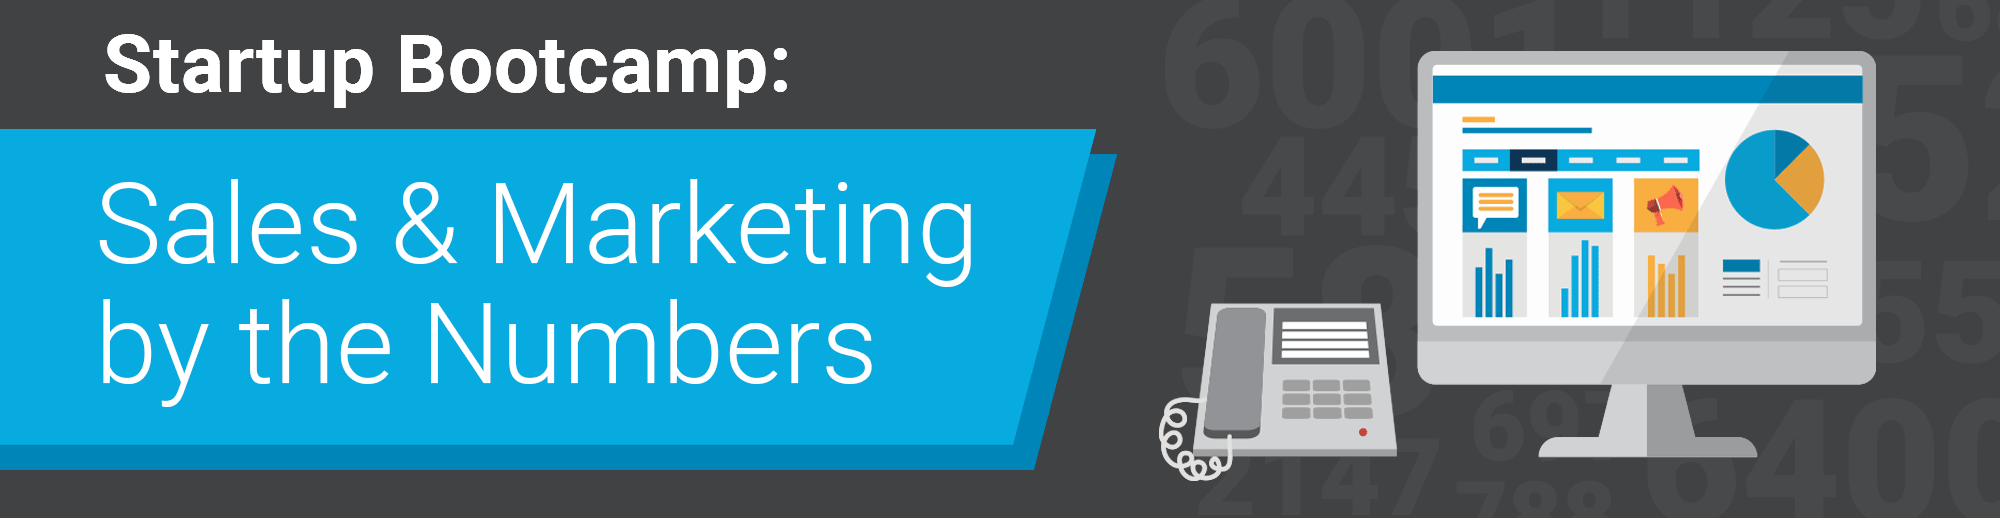 Sales and Marketing by the numbers for startups